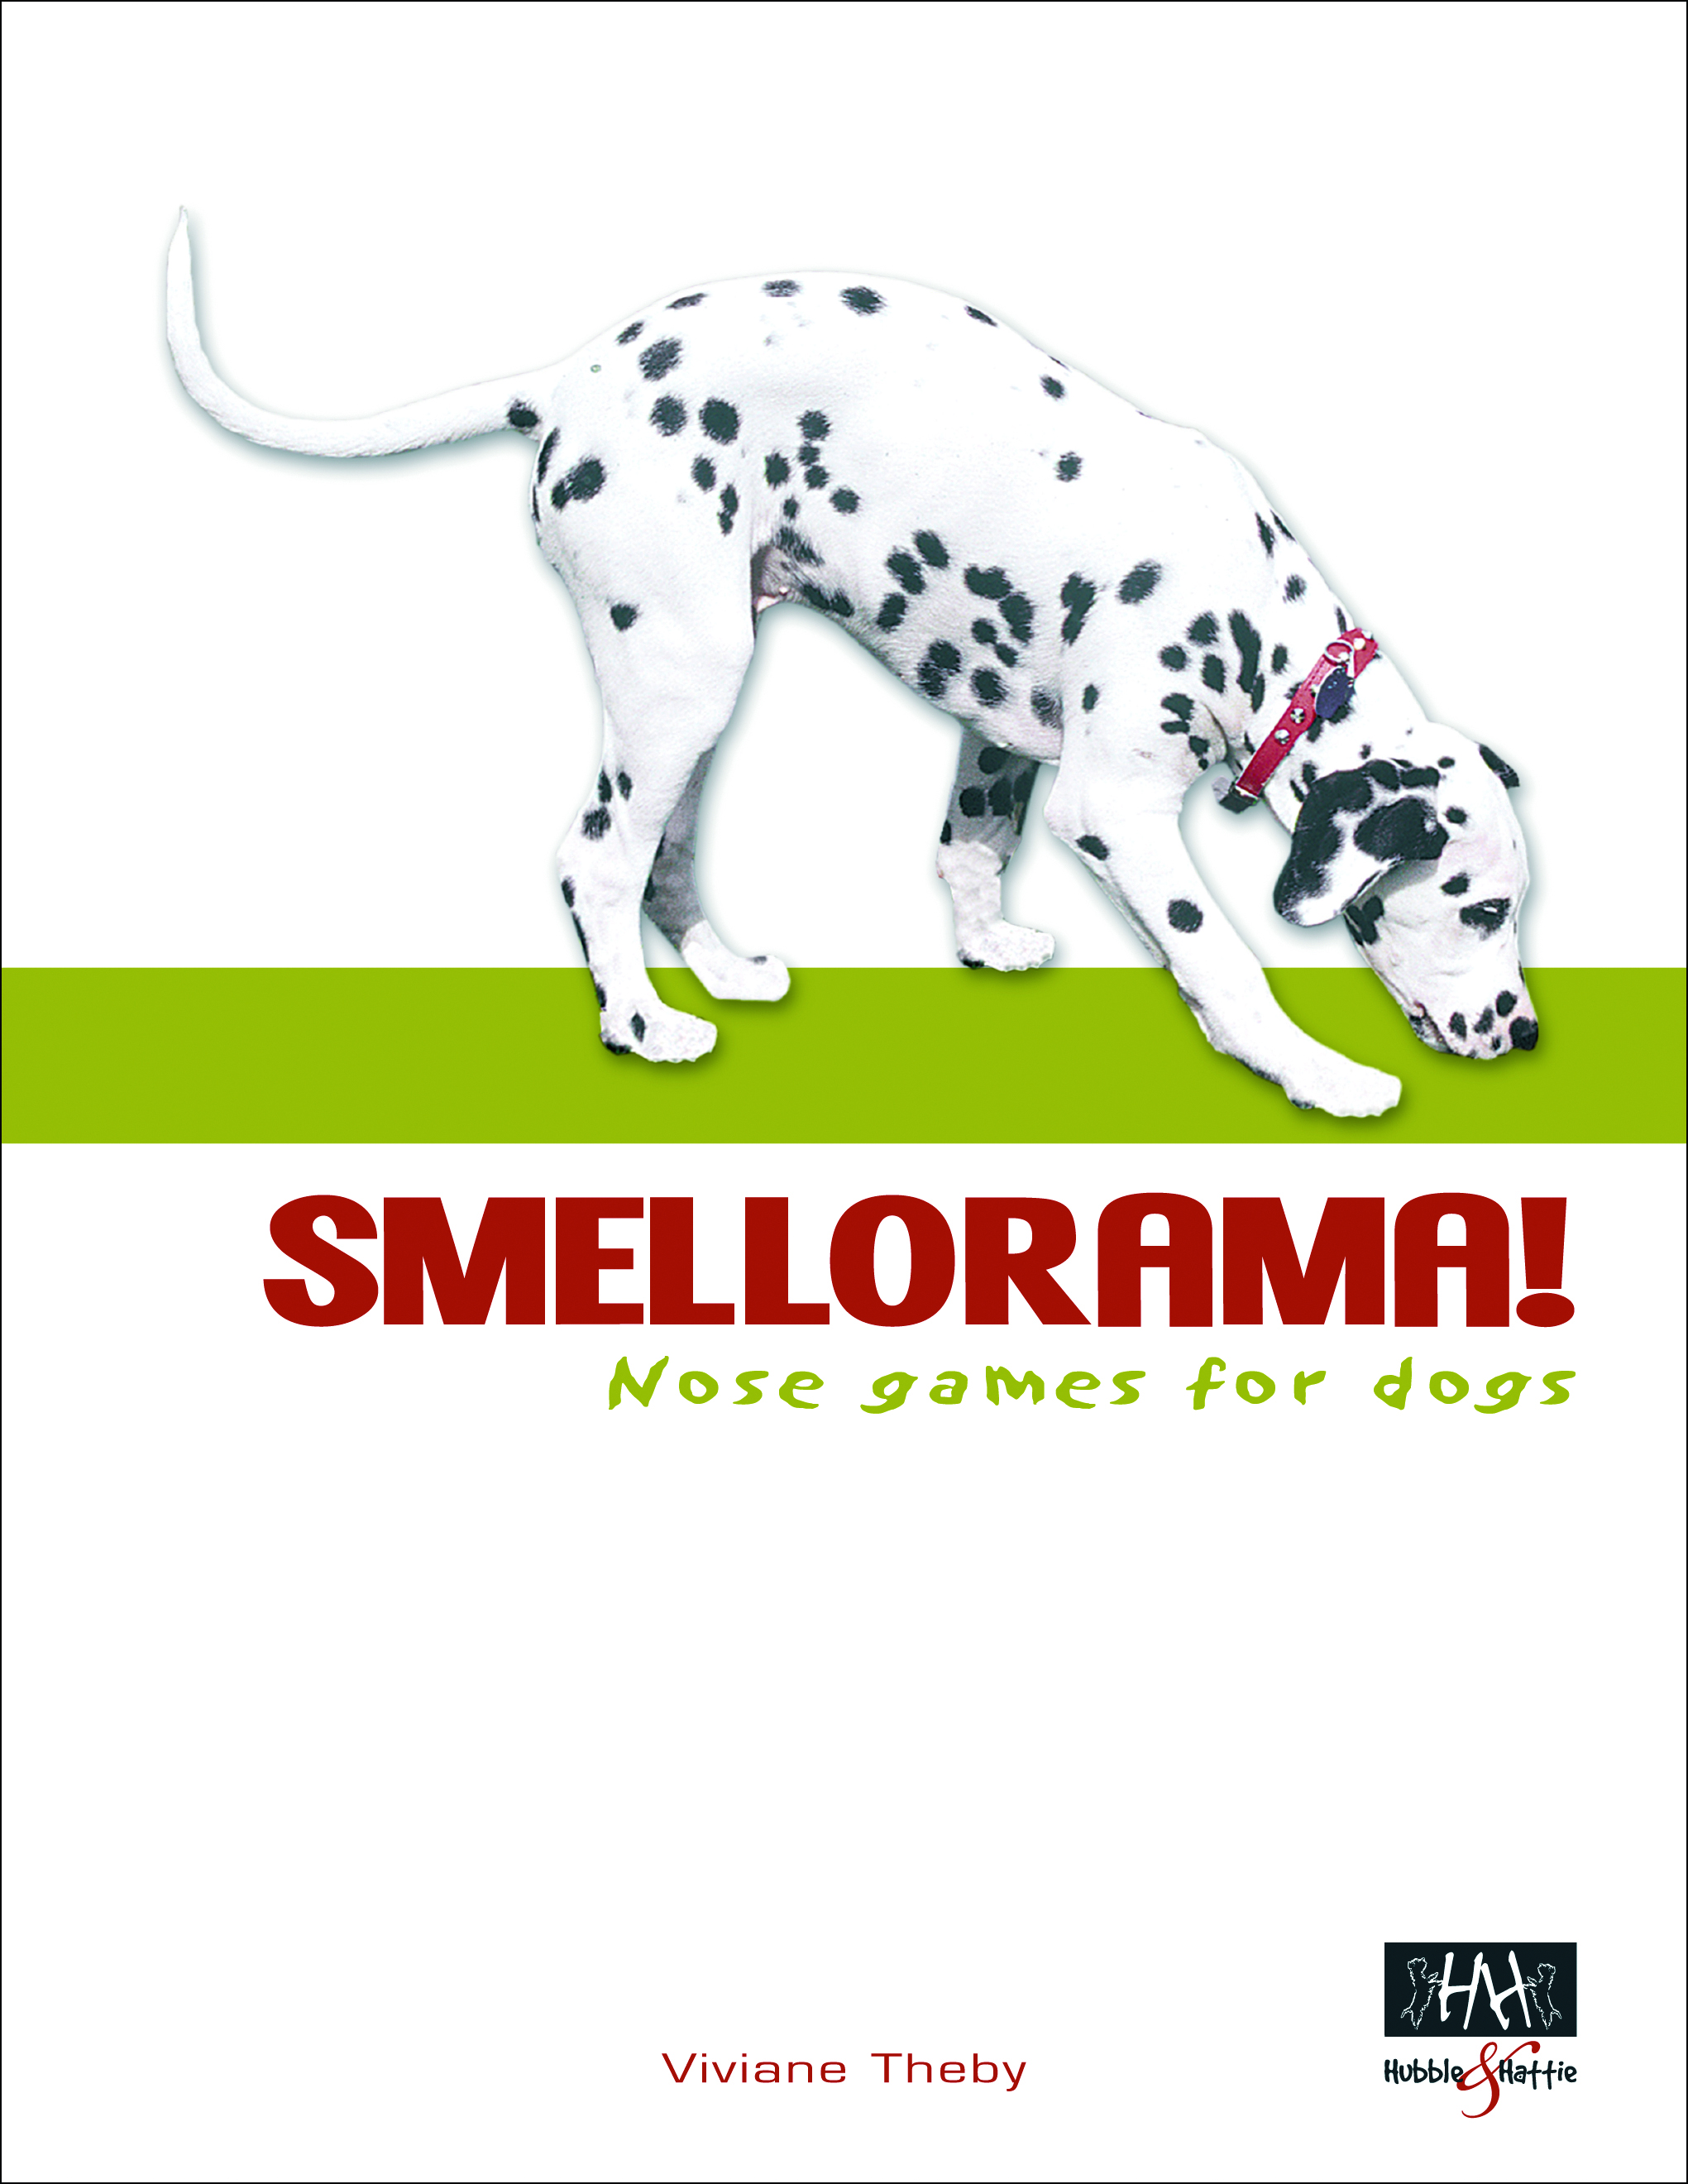 smellorama nose games for dogs